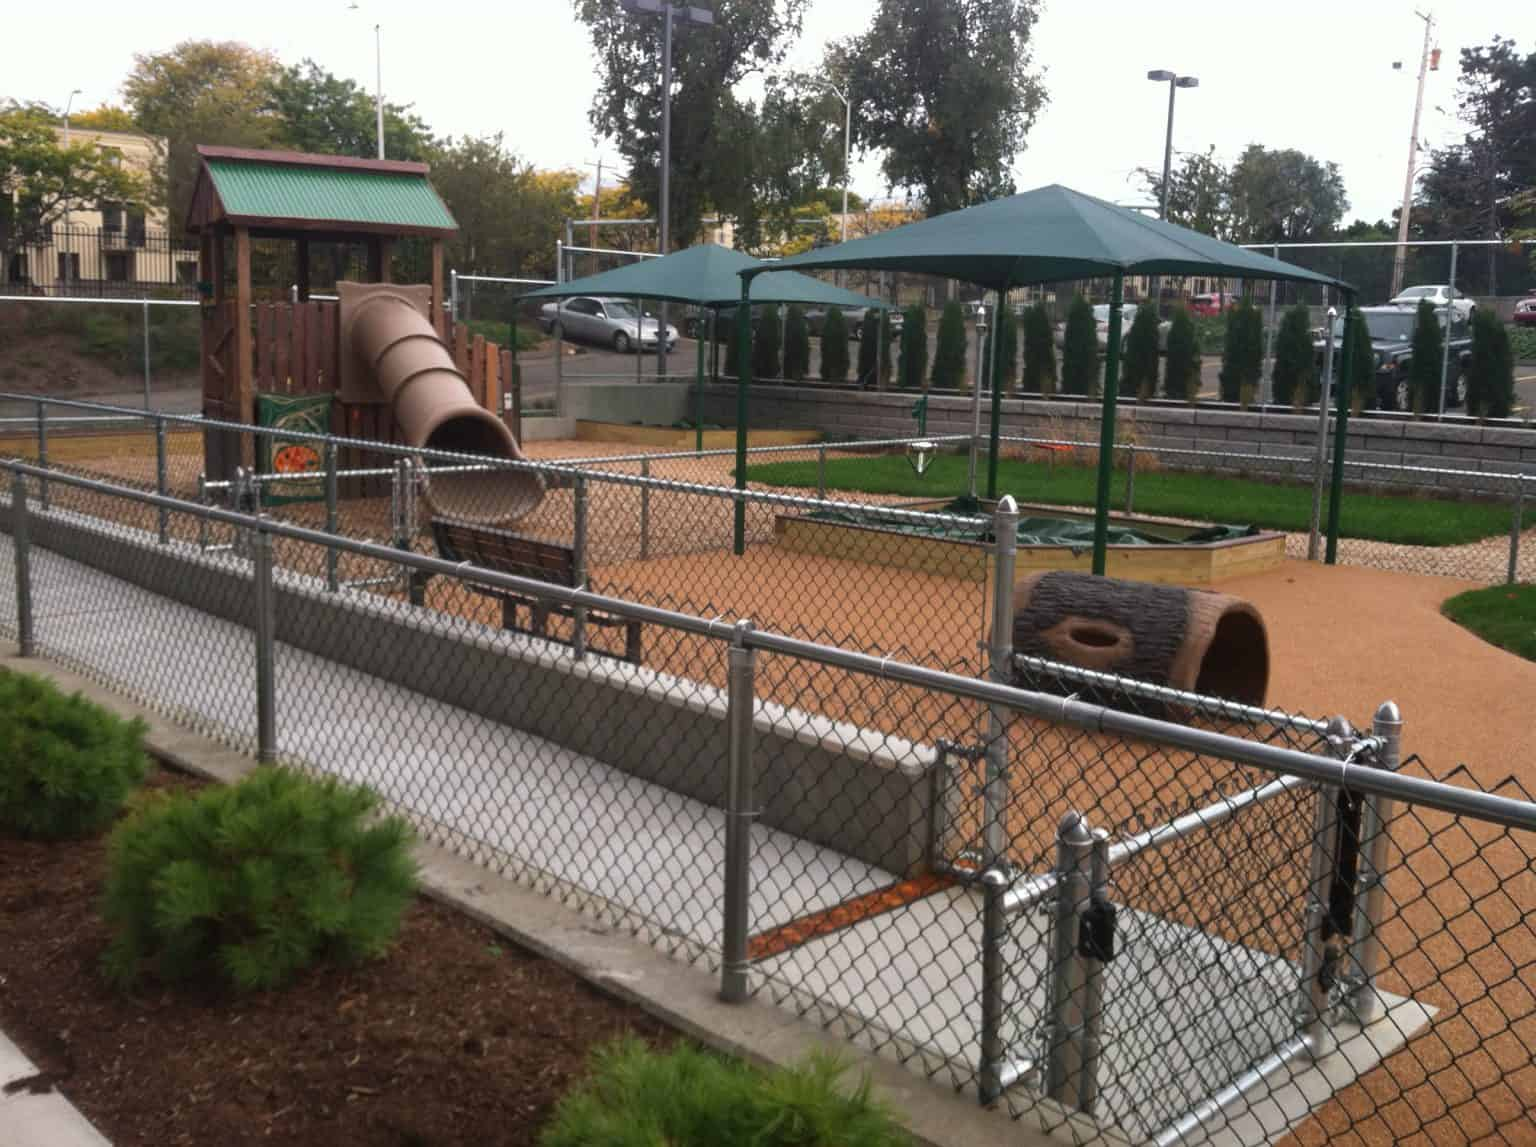 phyllis-bodel-daycare-playground-new-haven-ct_18124065212_o-1536x1147